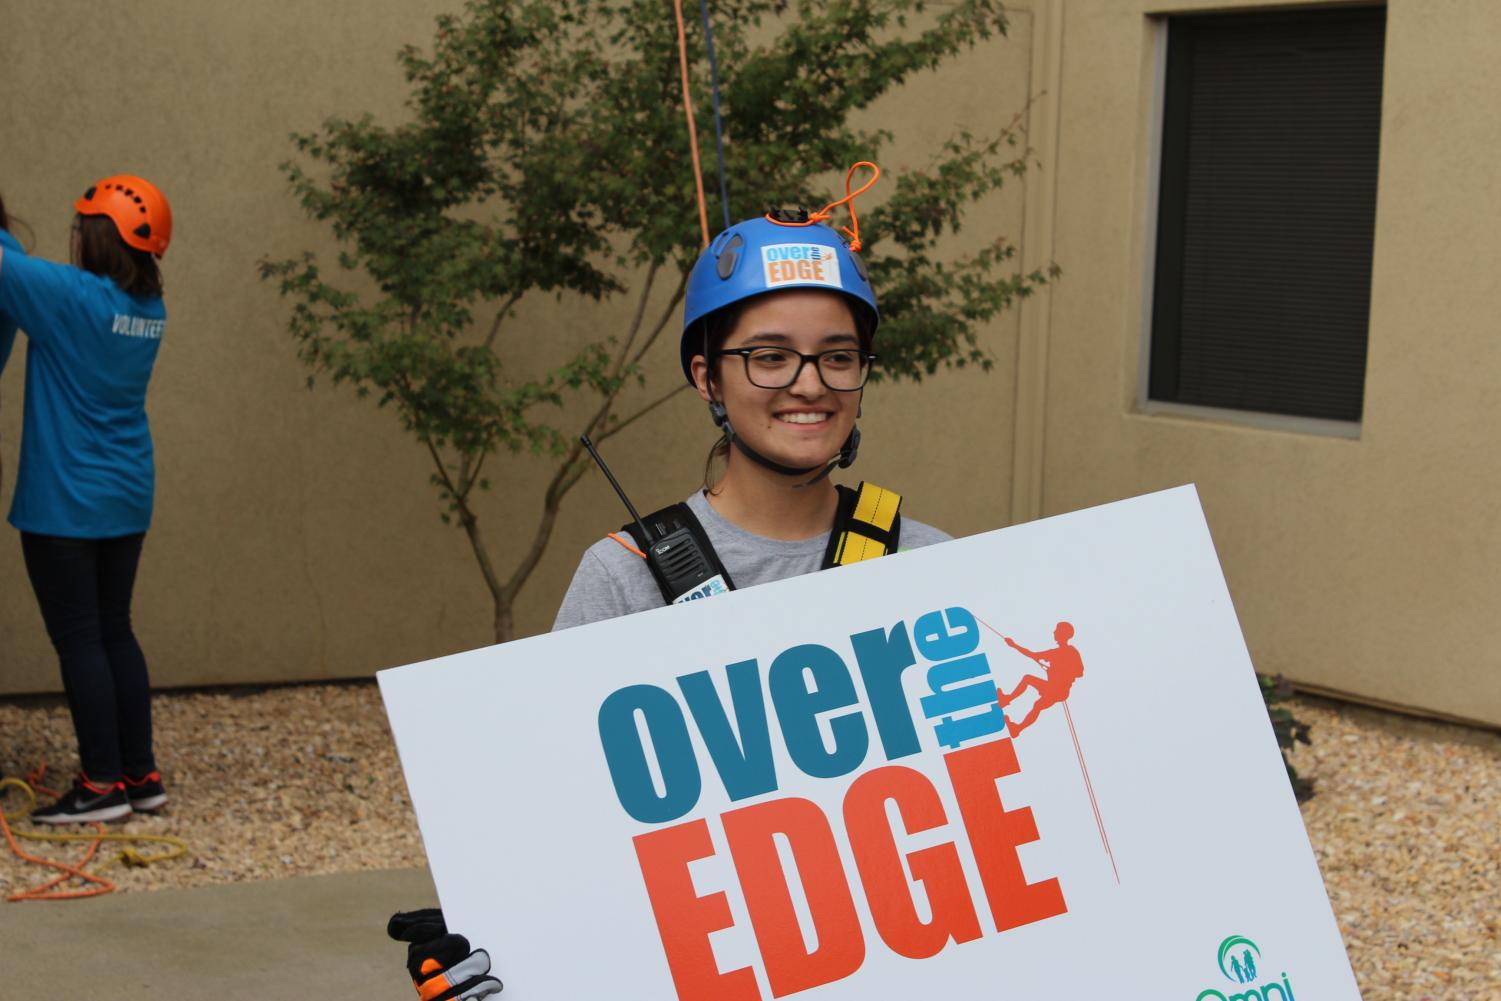 Briuana Guerro after rappelling the Marriott Hotel